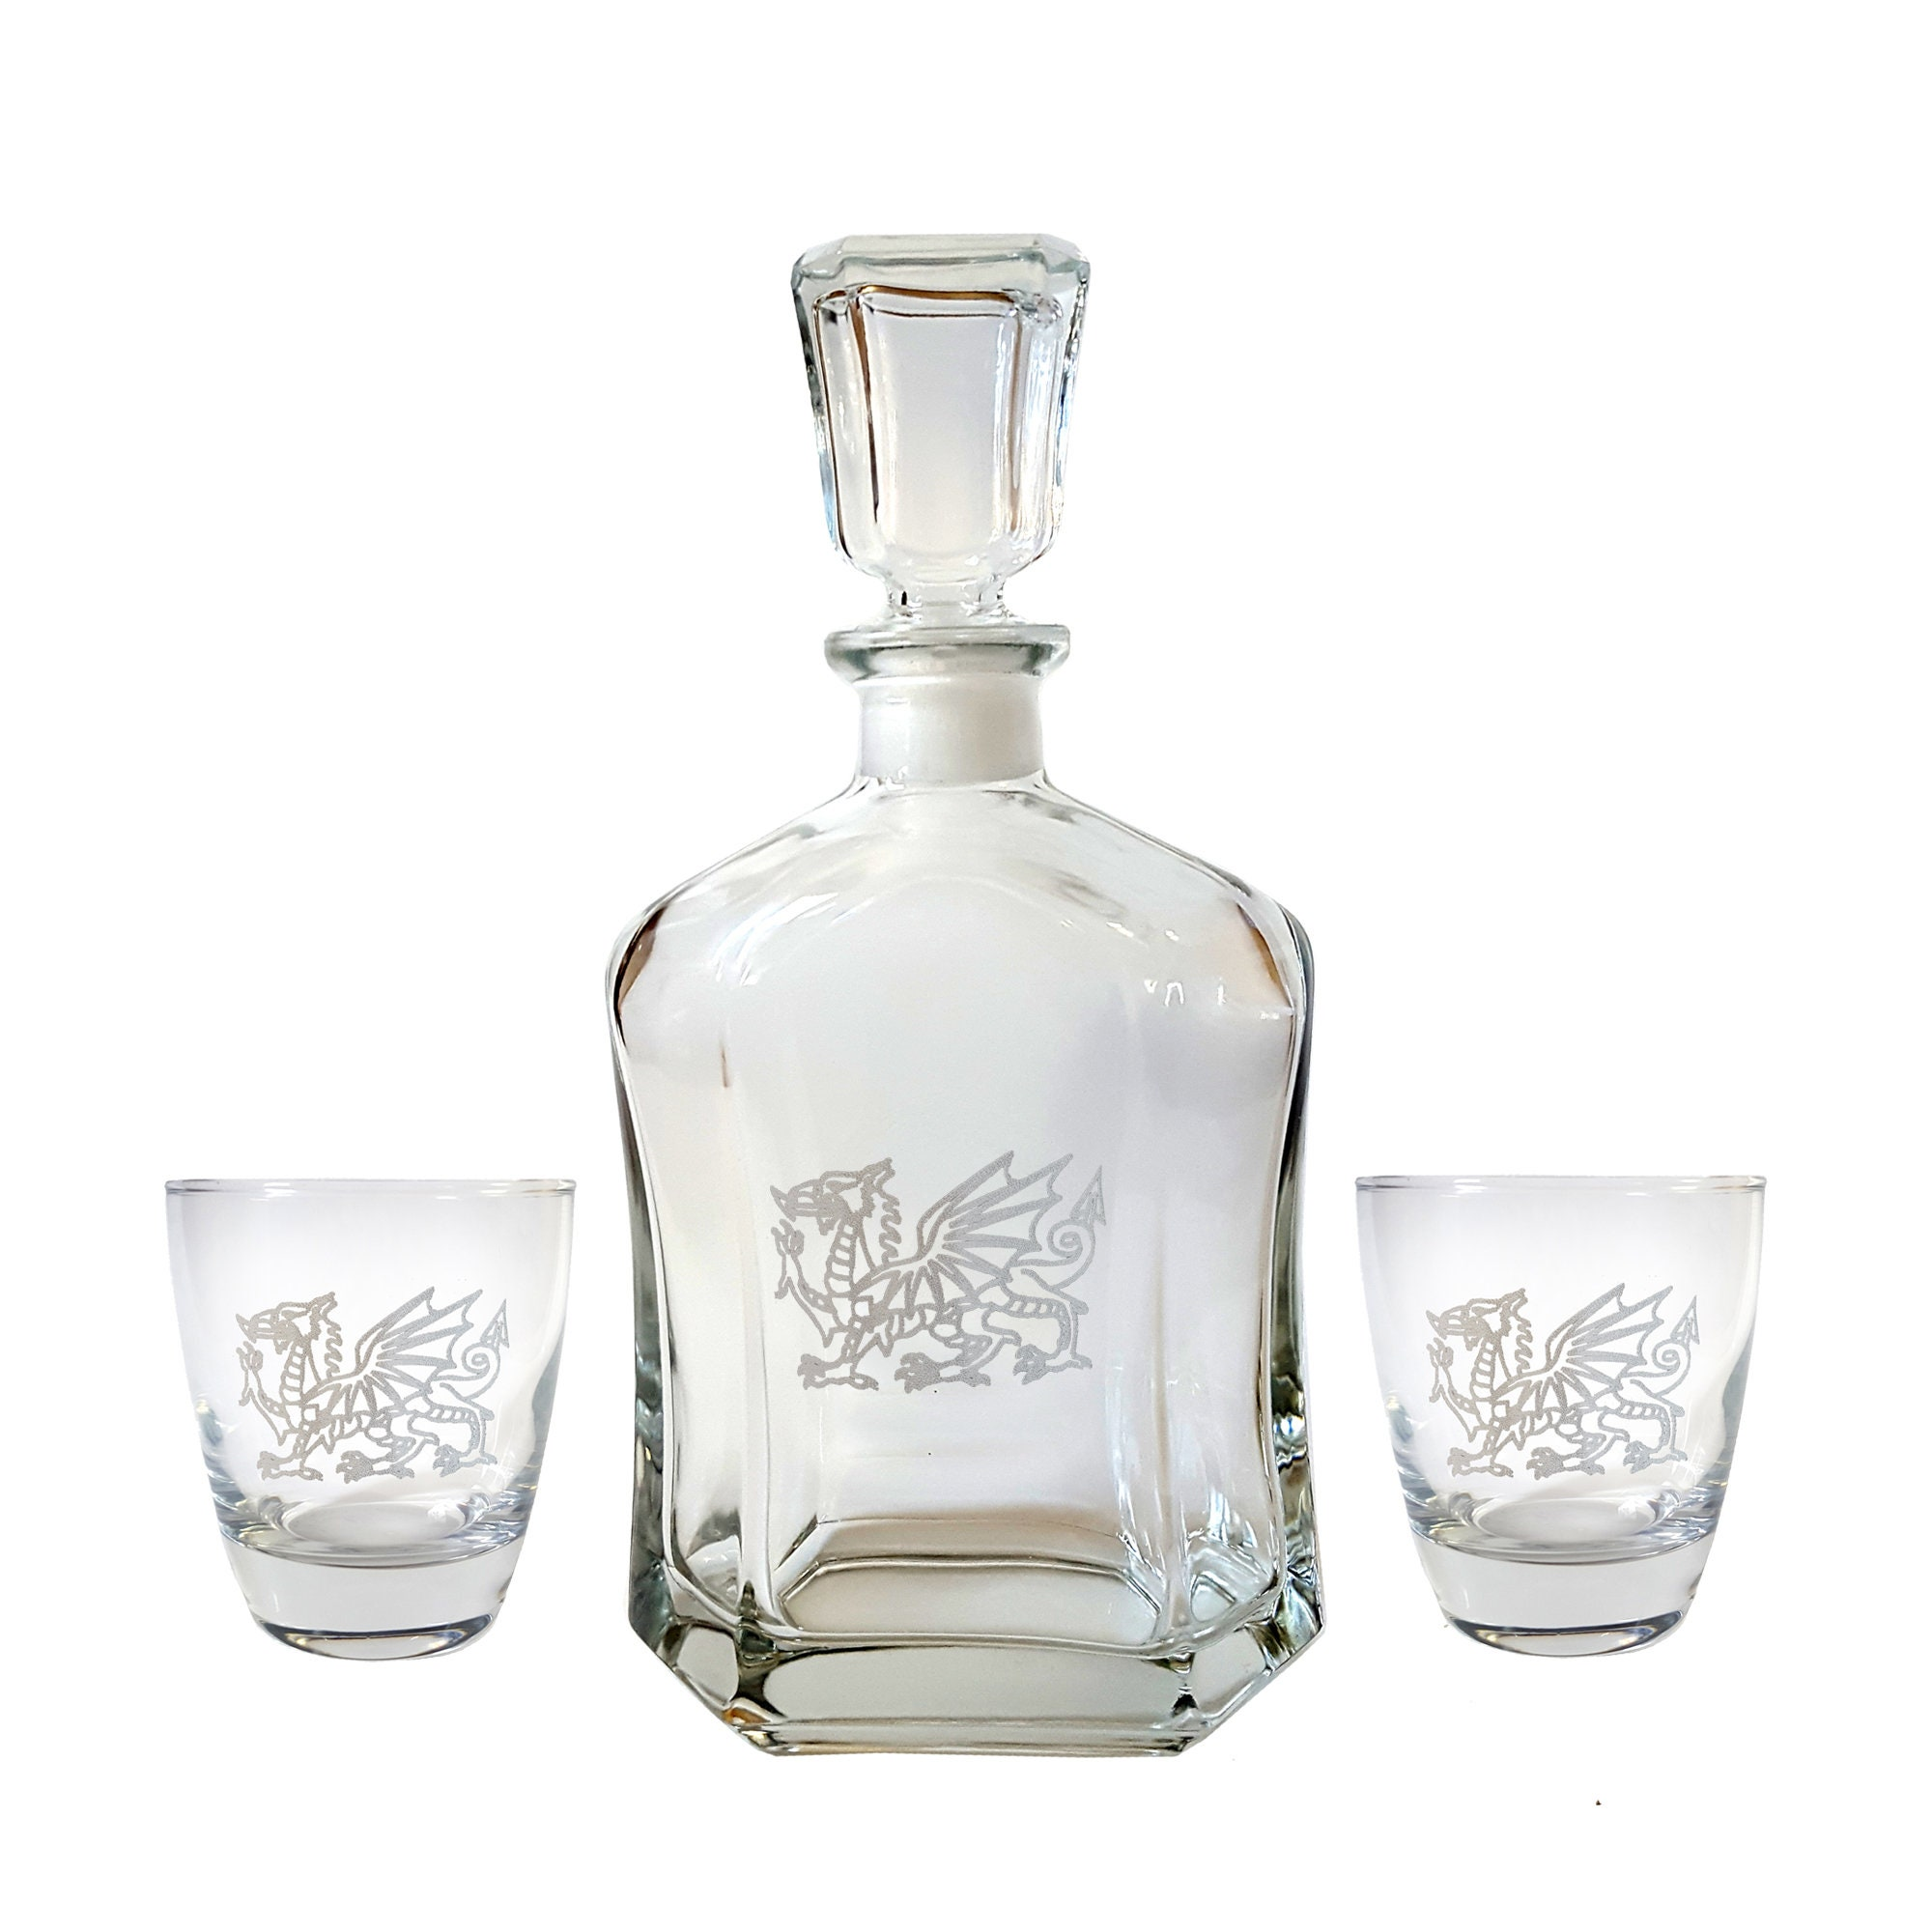 Crystal Steampunk Glasses Dragon Decanter Gift Box Set Steampunk Dragon Decanter Box Set